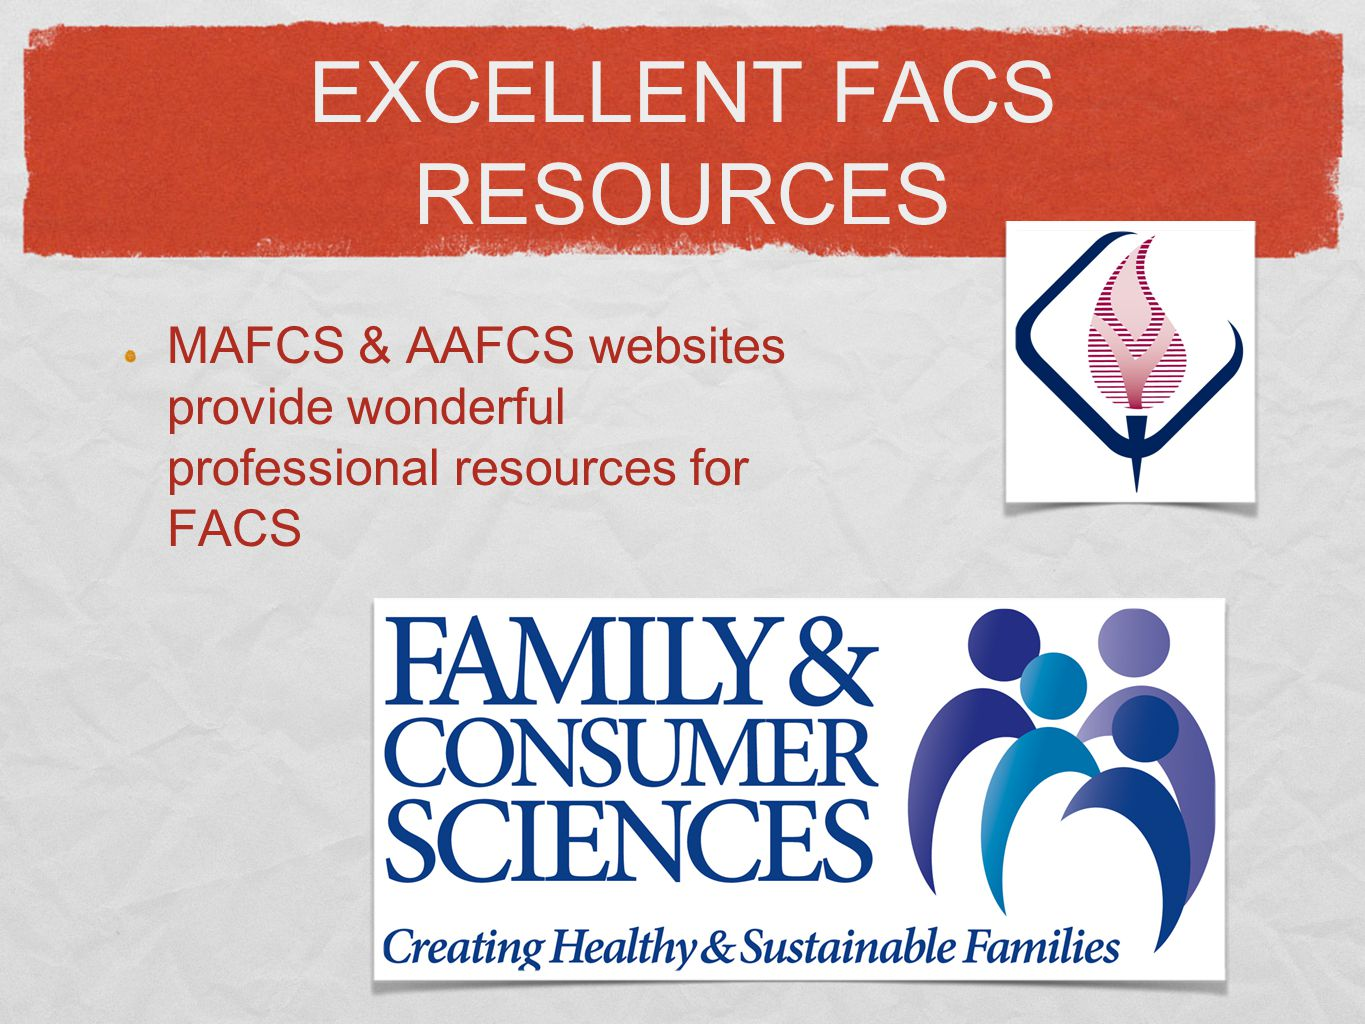 EXCELLENT FACS RESOURCES MAFCS & AAFCS websites provide wonderful professional resources for FACS